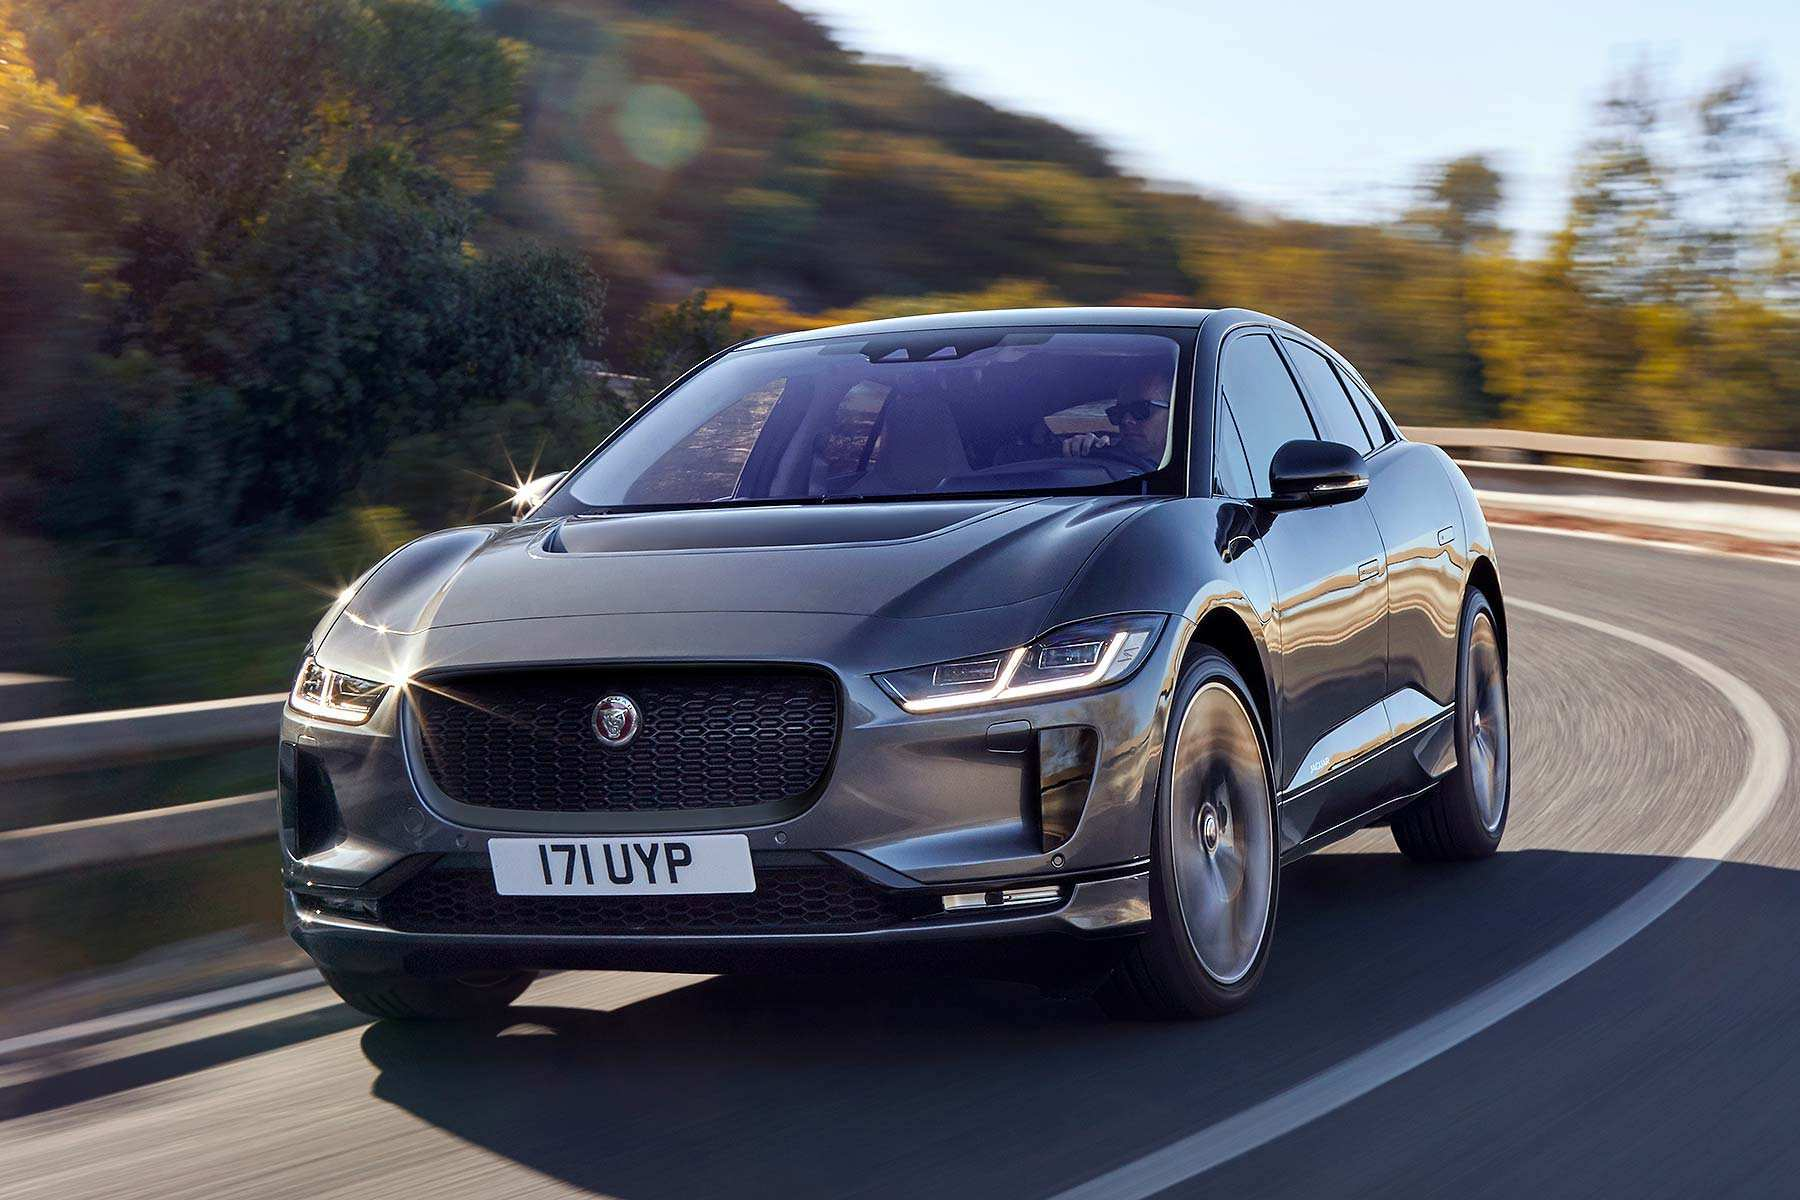 24 Gallery of 2019 Jaguar I Pace New Concept for 2019 Jaguar I Pace